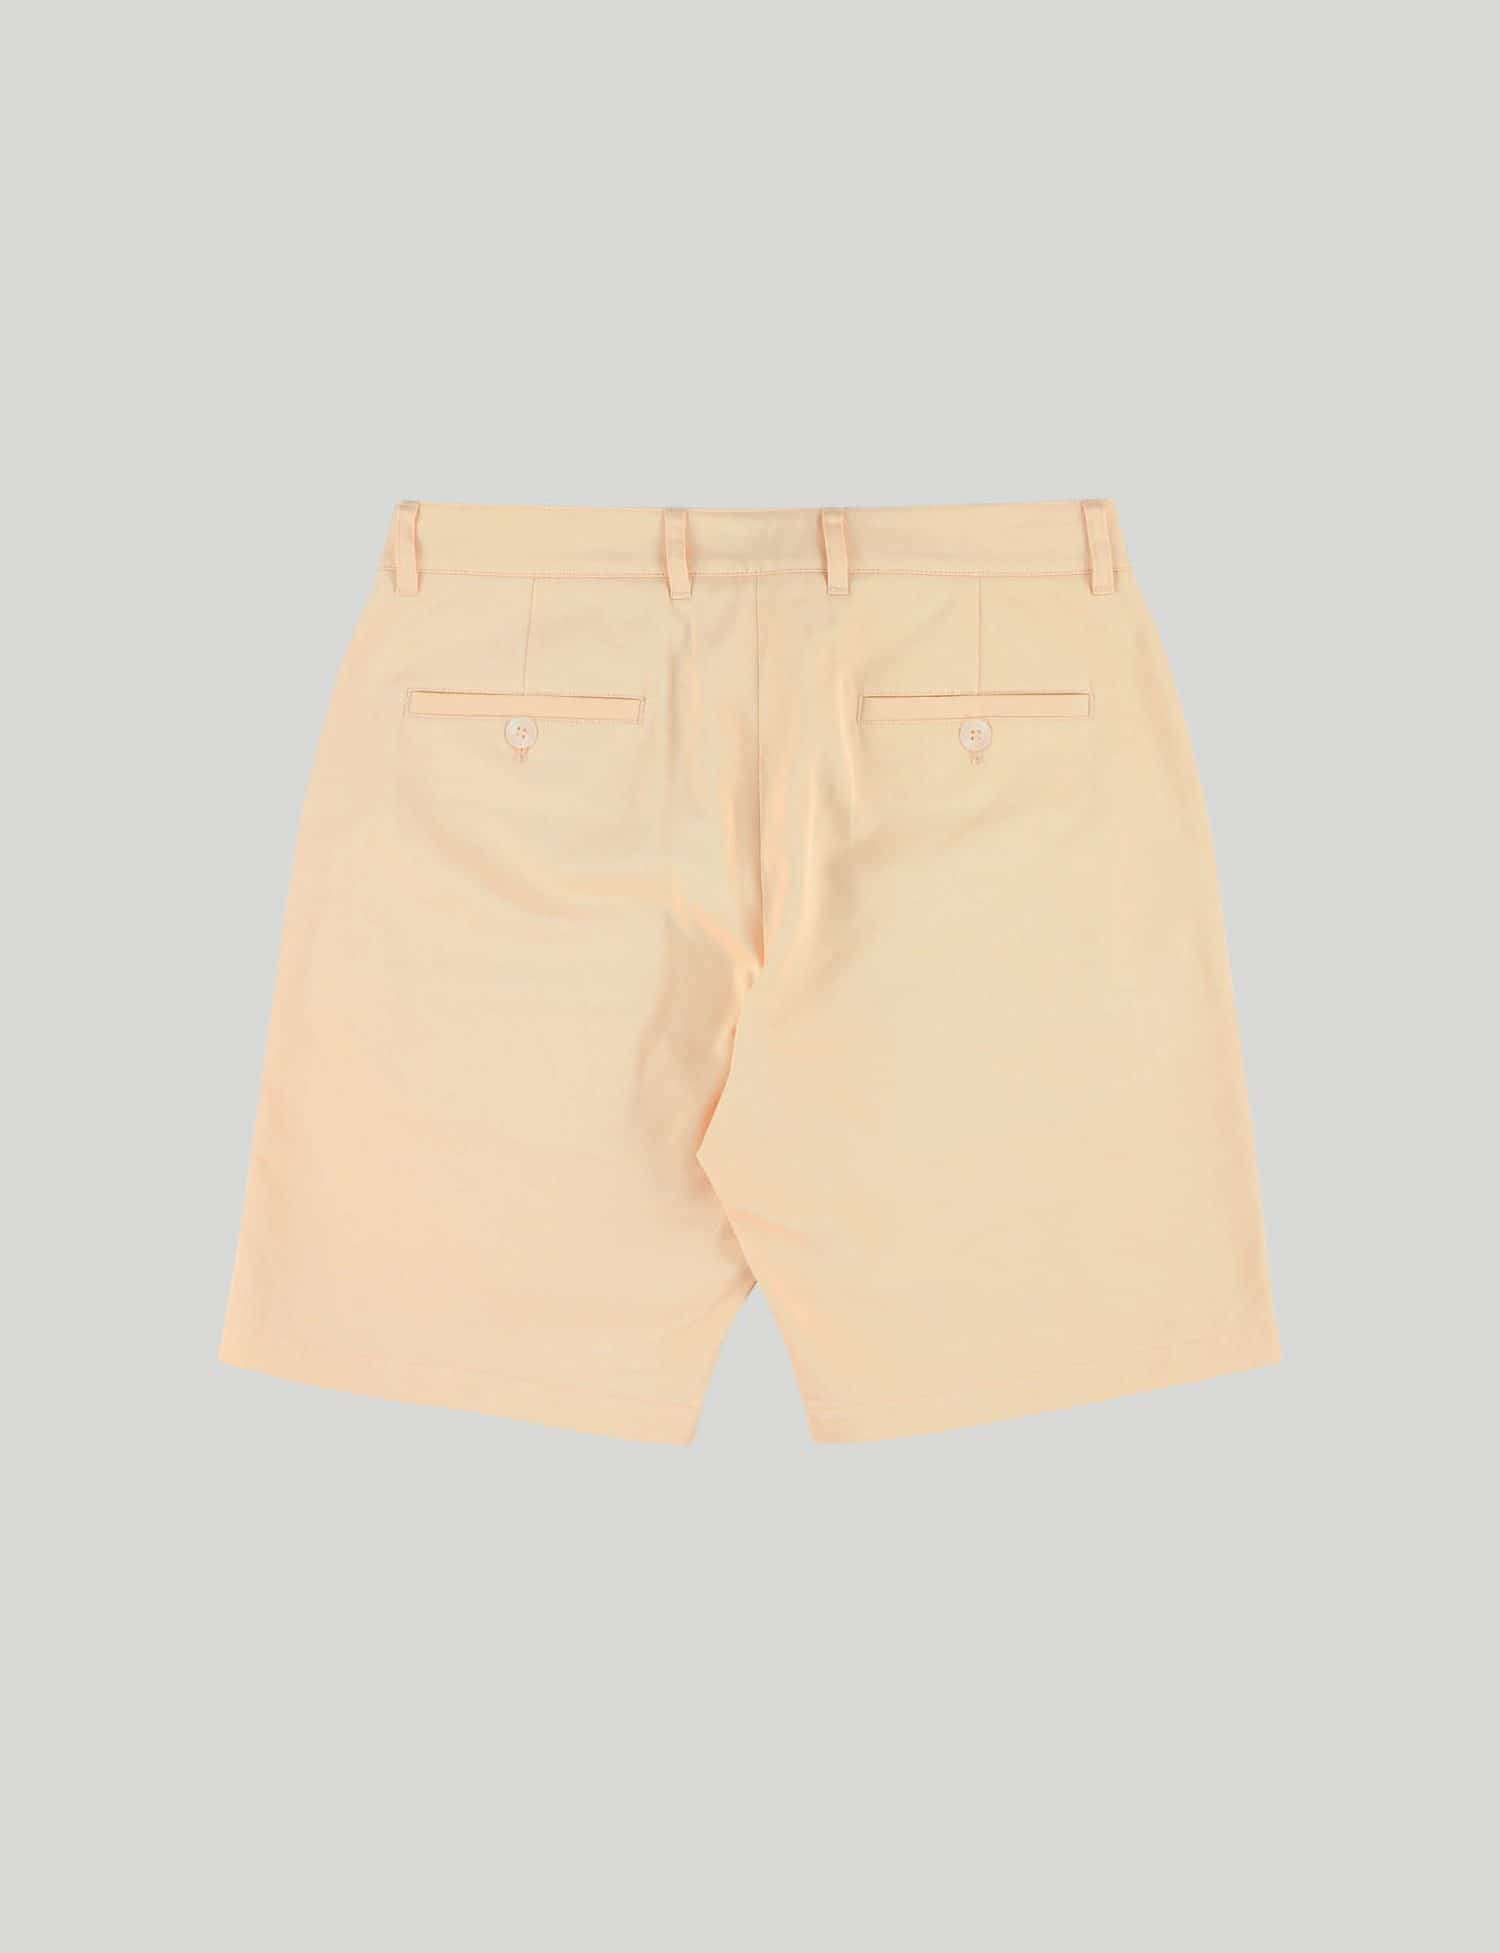 Castart - Angel Wing Shorts - Apricot